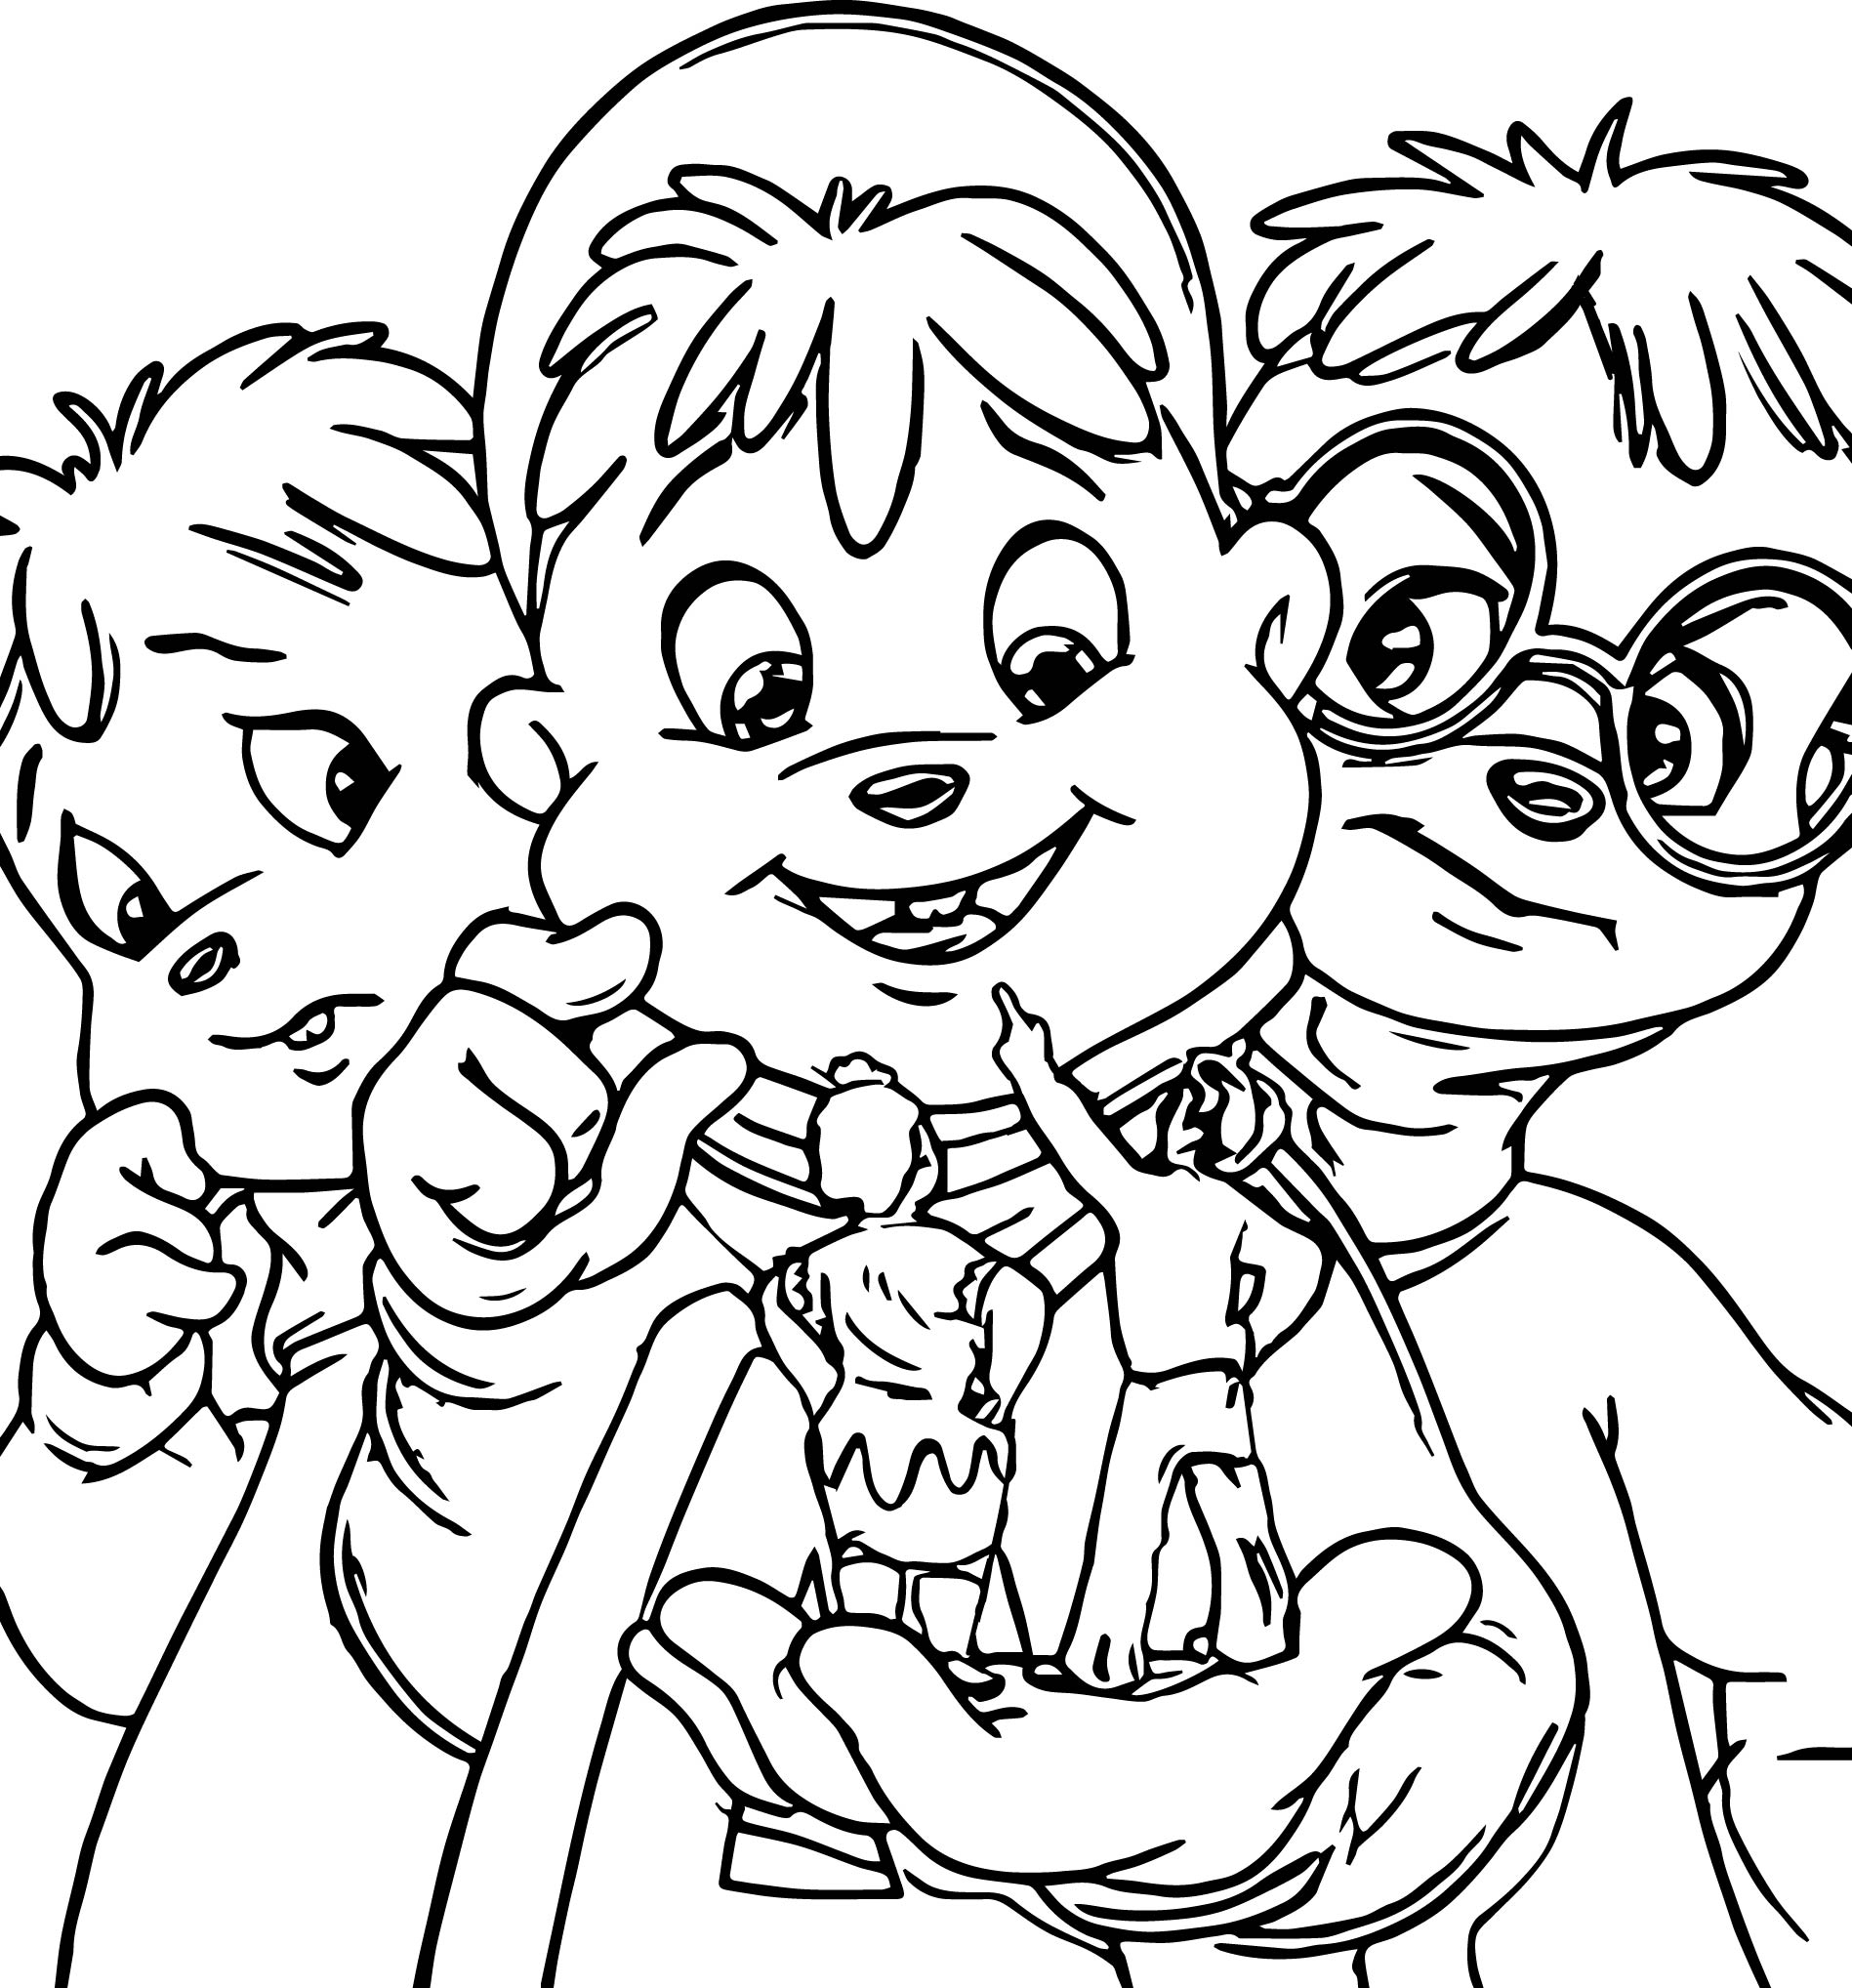 Alvin and chipmunks coloring pages for Chipmunks coloring pages